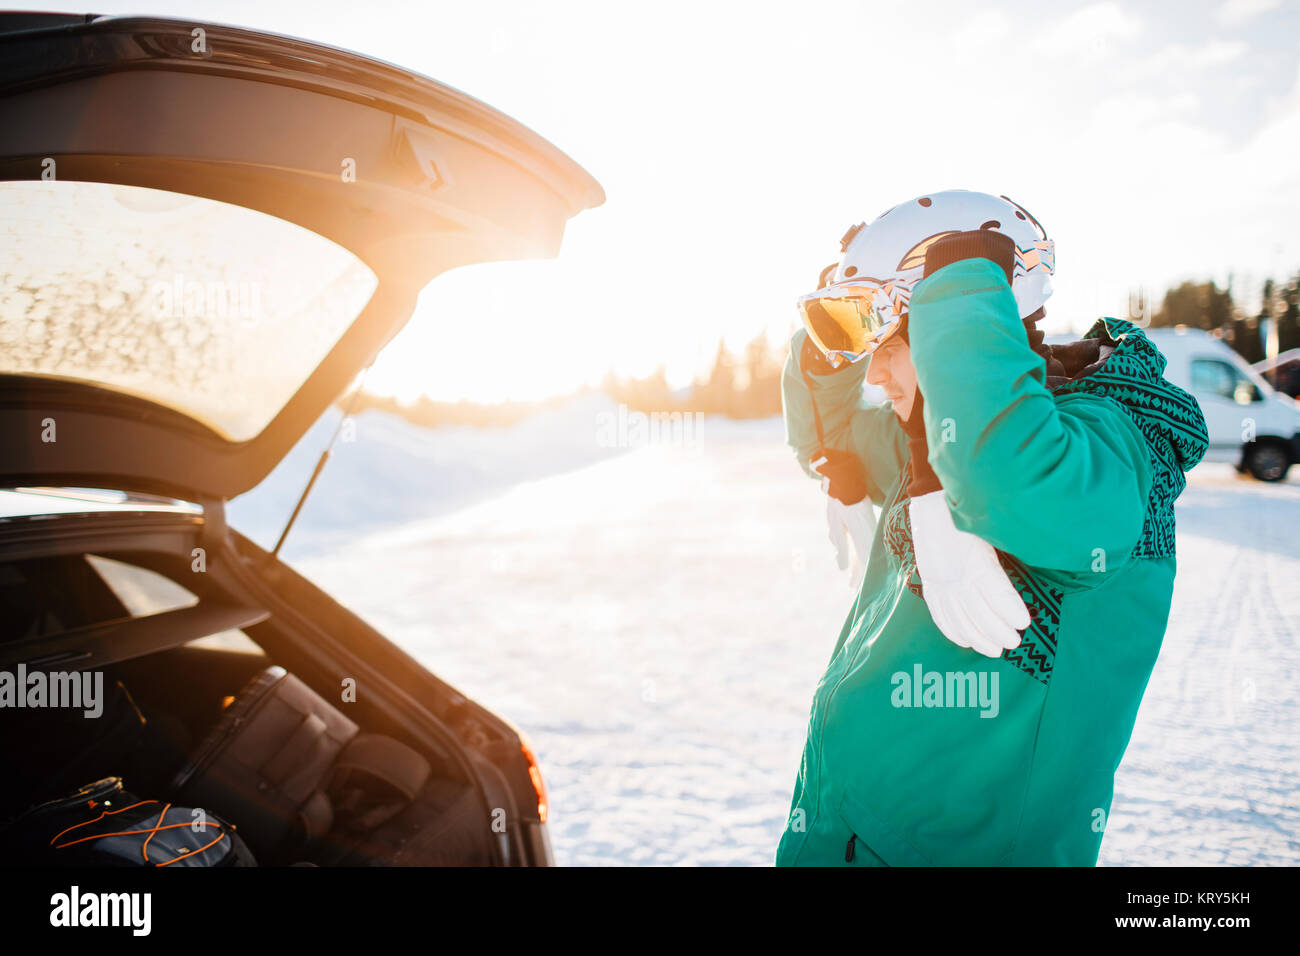 Man by a car on snow in Osterdalen, Norway Stock Photo